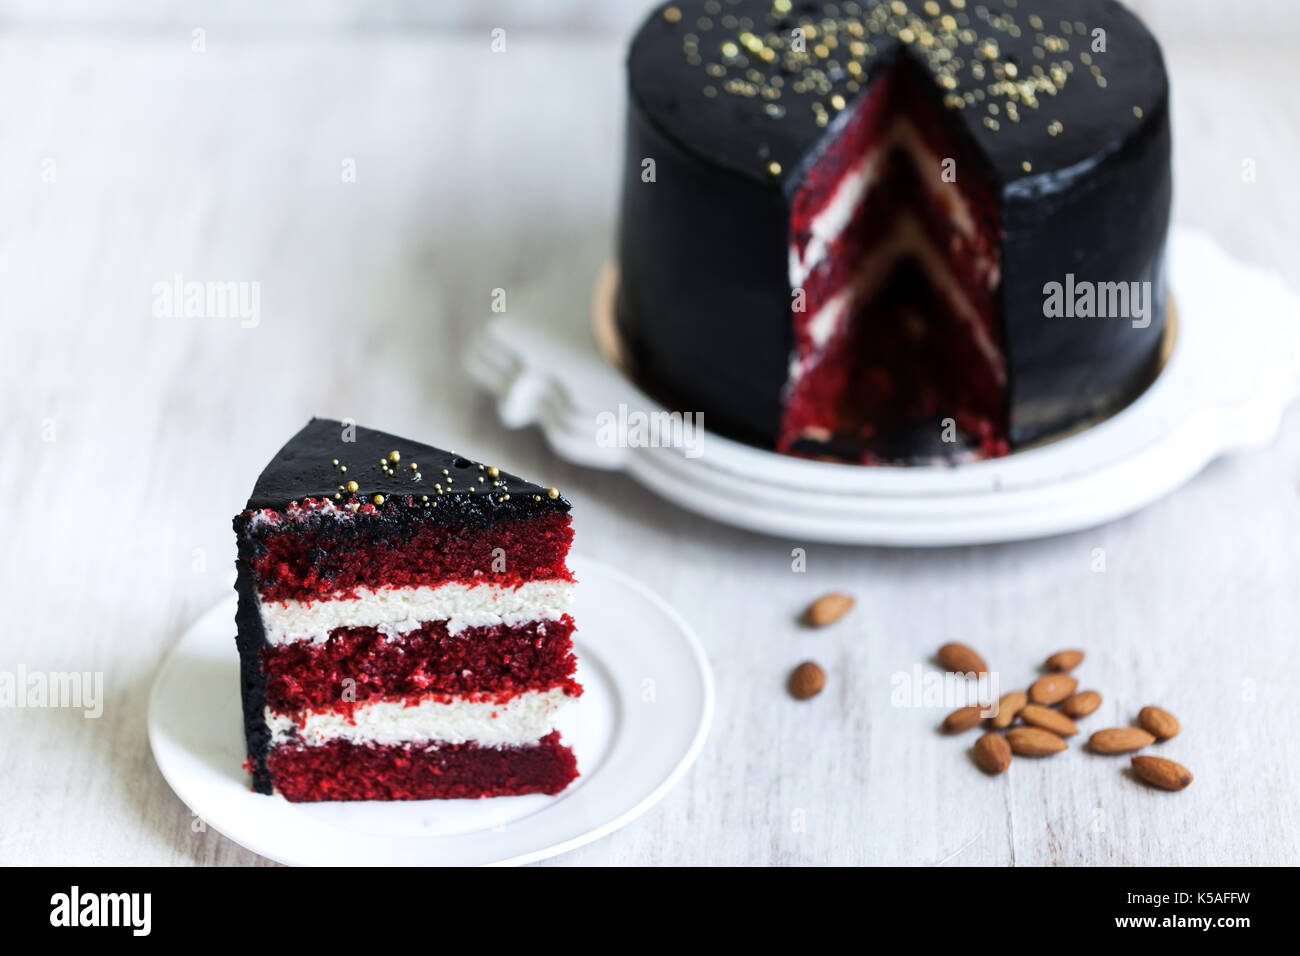 Round black cake with striped red and white filling - Stock Image